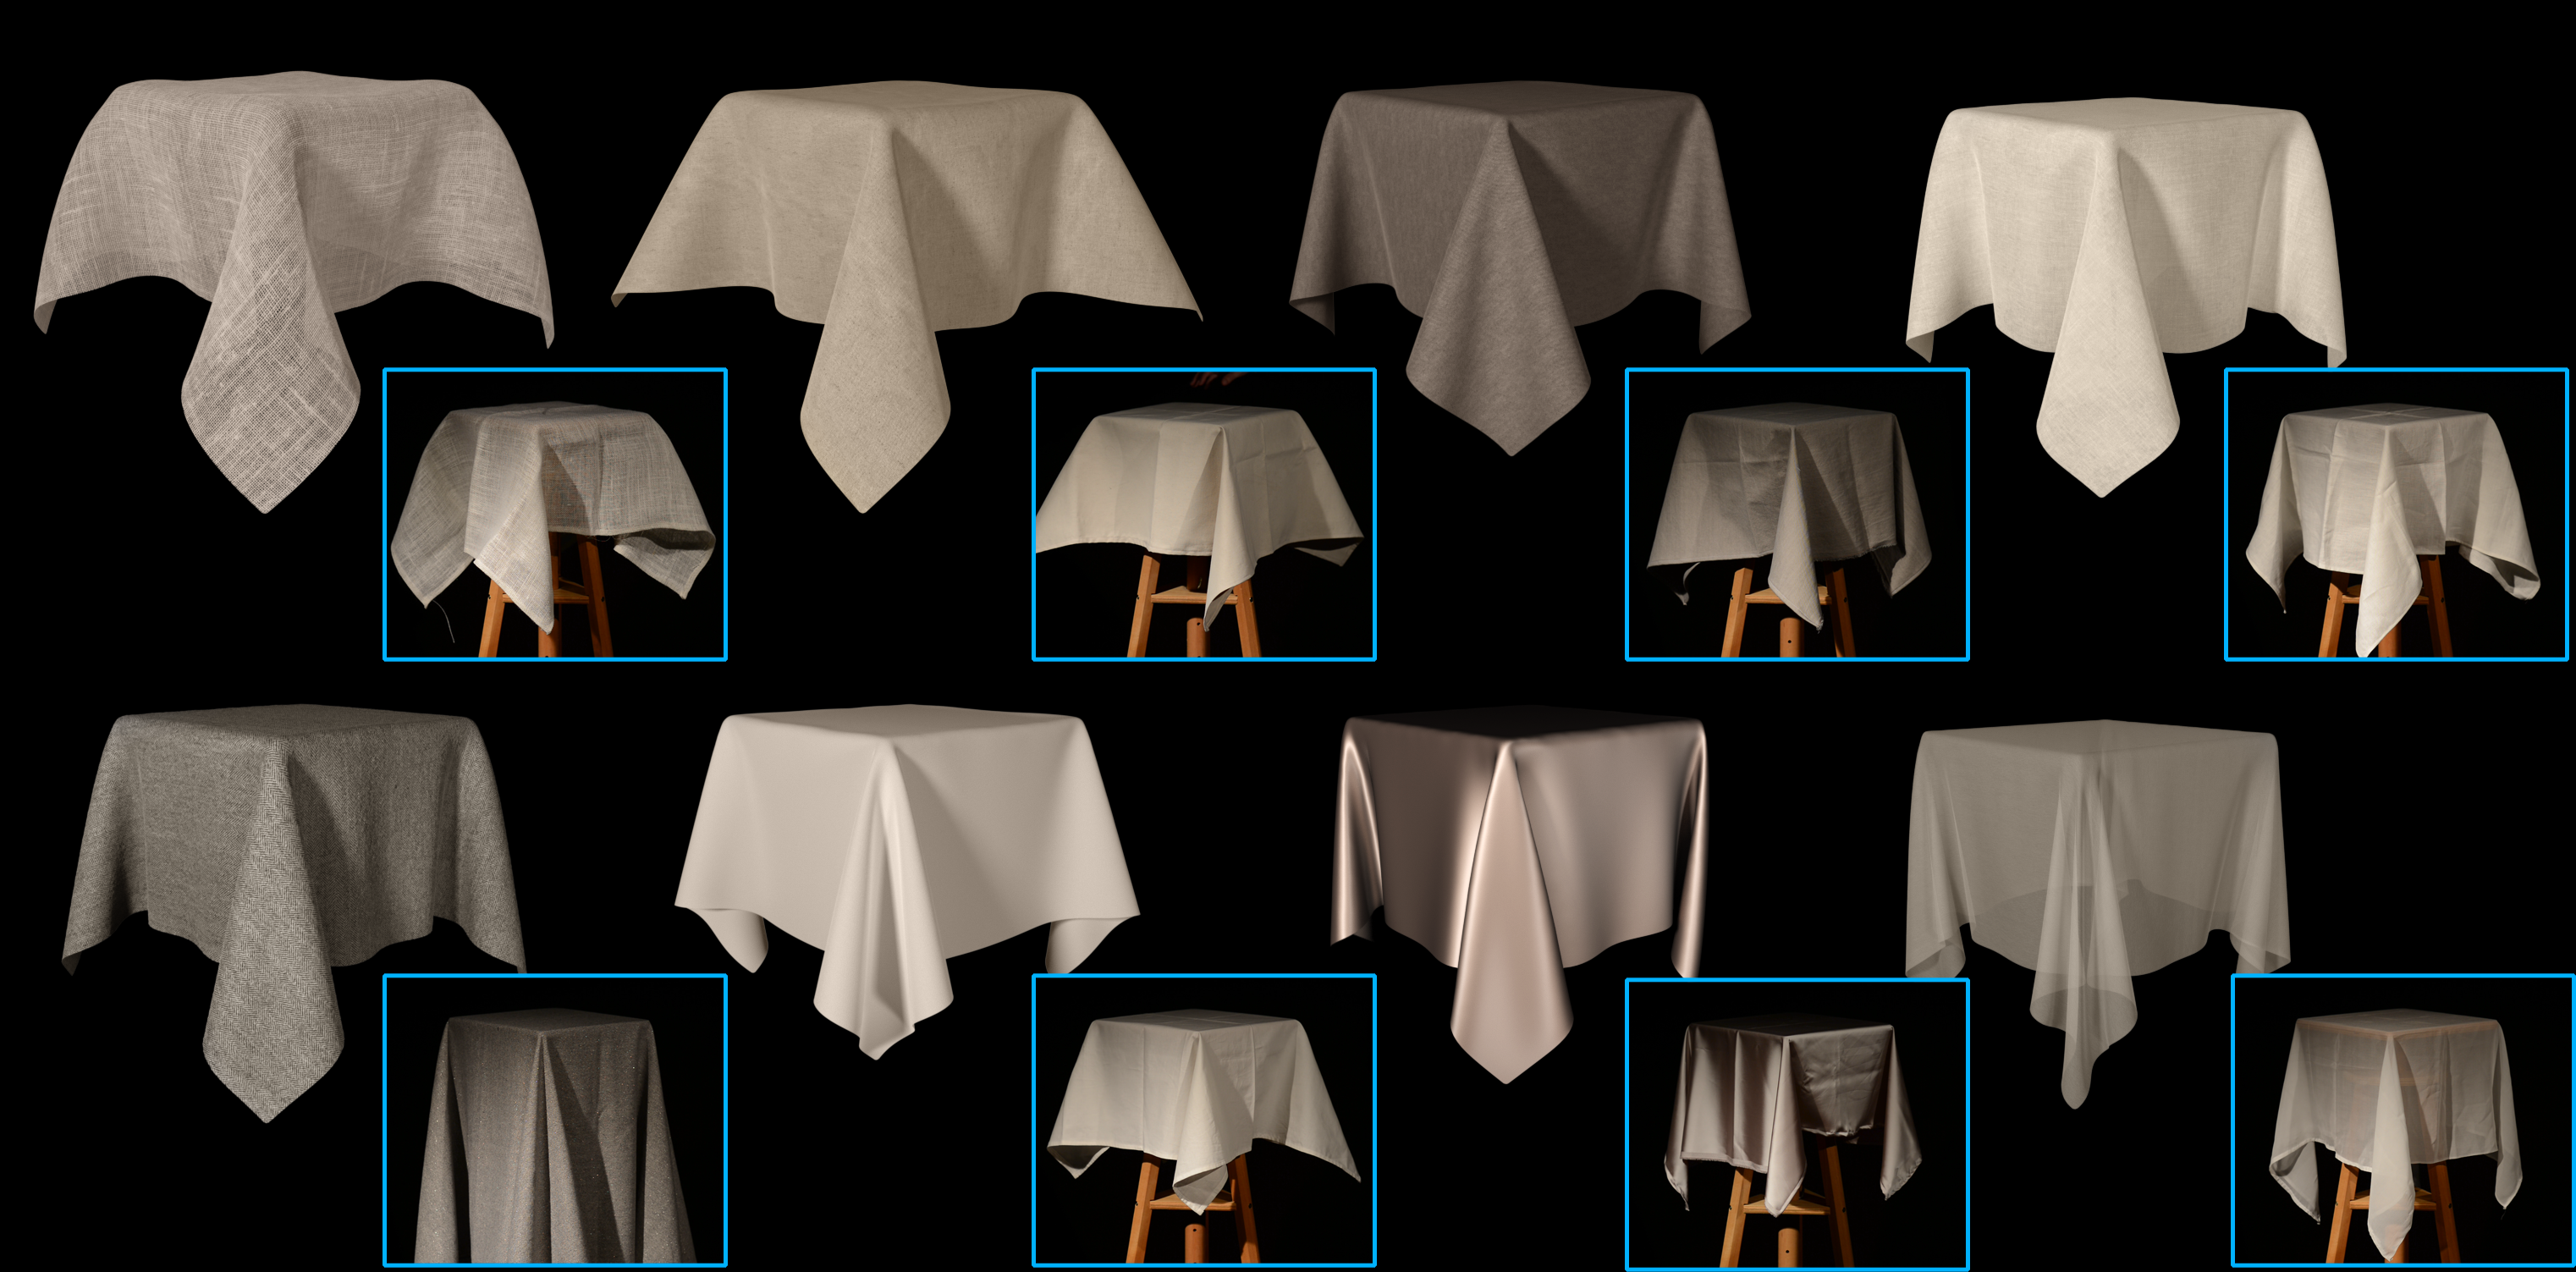 Sackcloth or Silk? The Impact of Appearance vs Dynamics on the Perception of Animated Cloth-Image